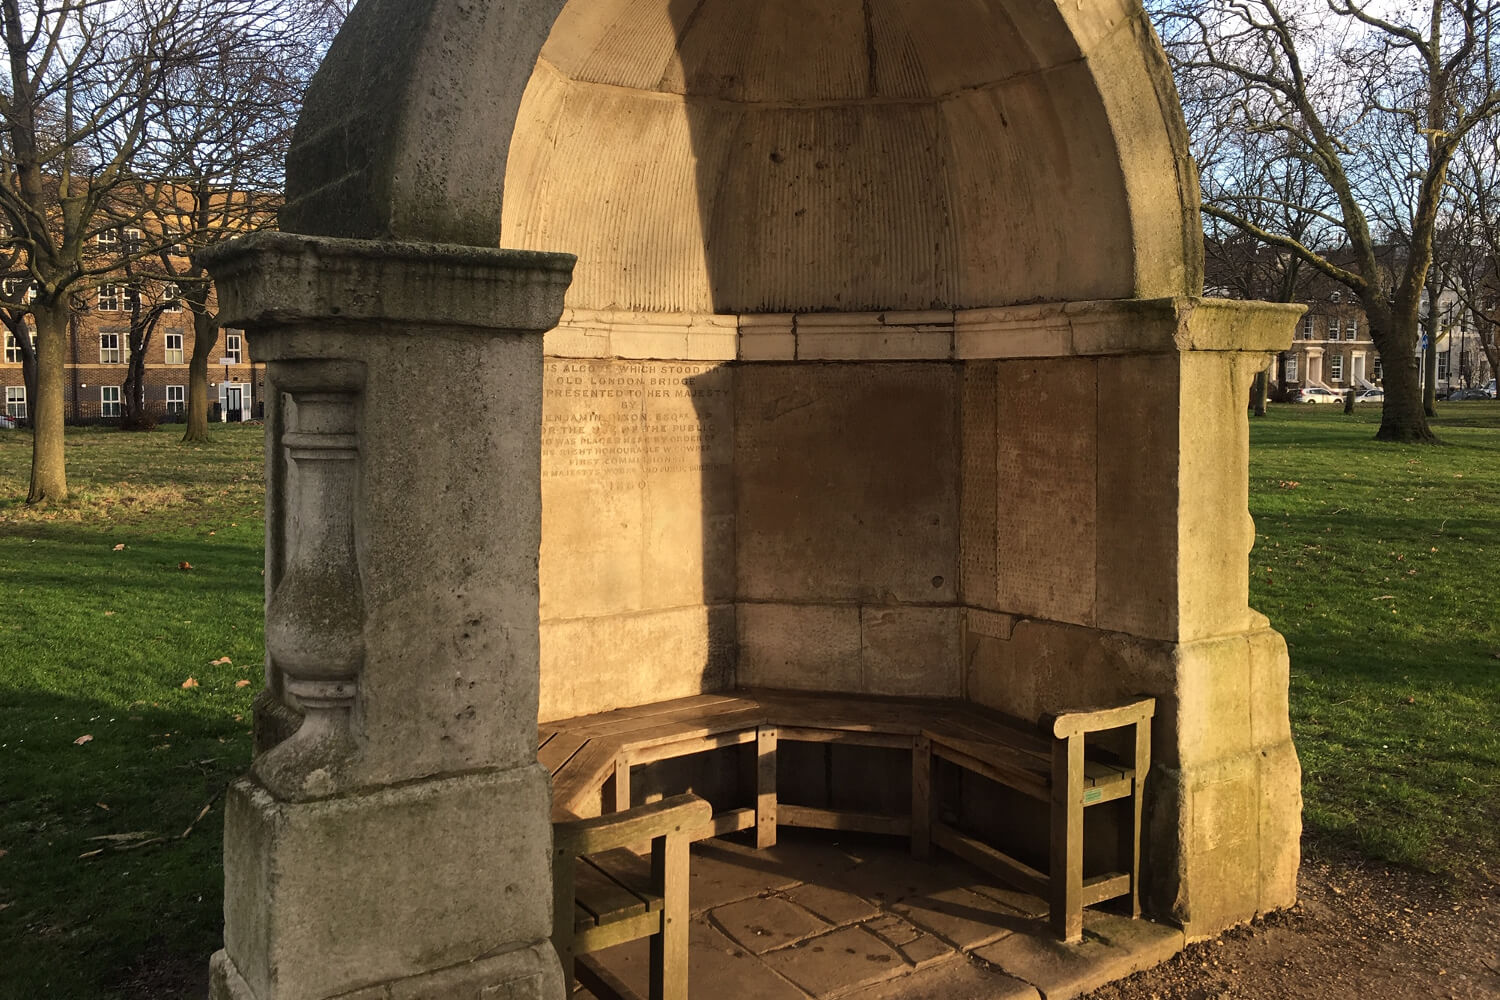 One of the stone alcoves in Victoria Park